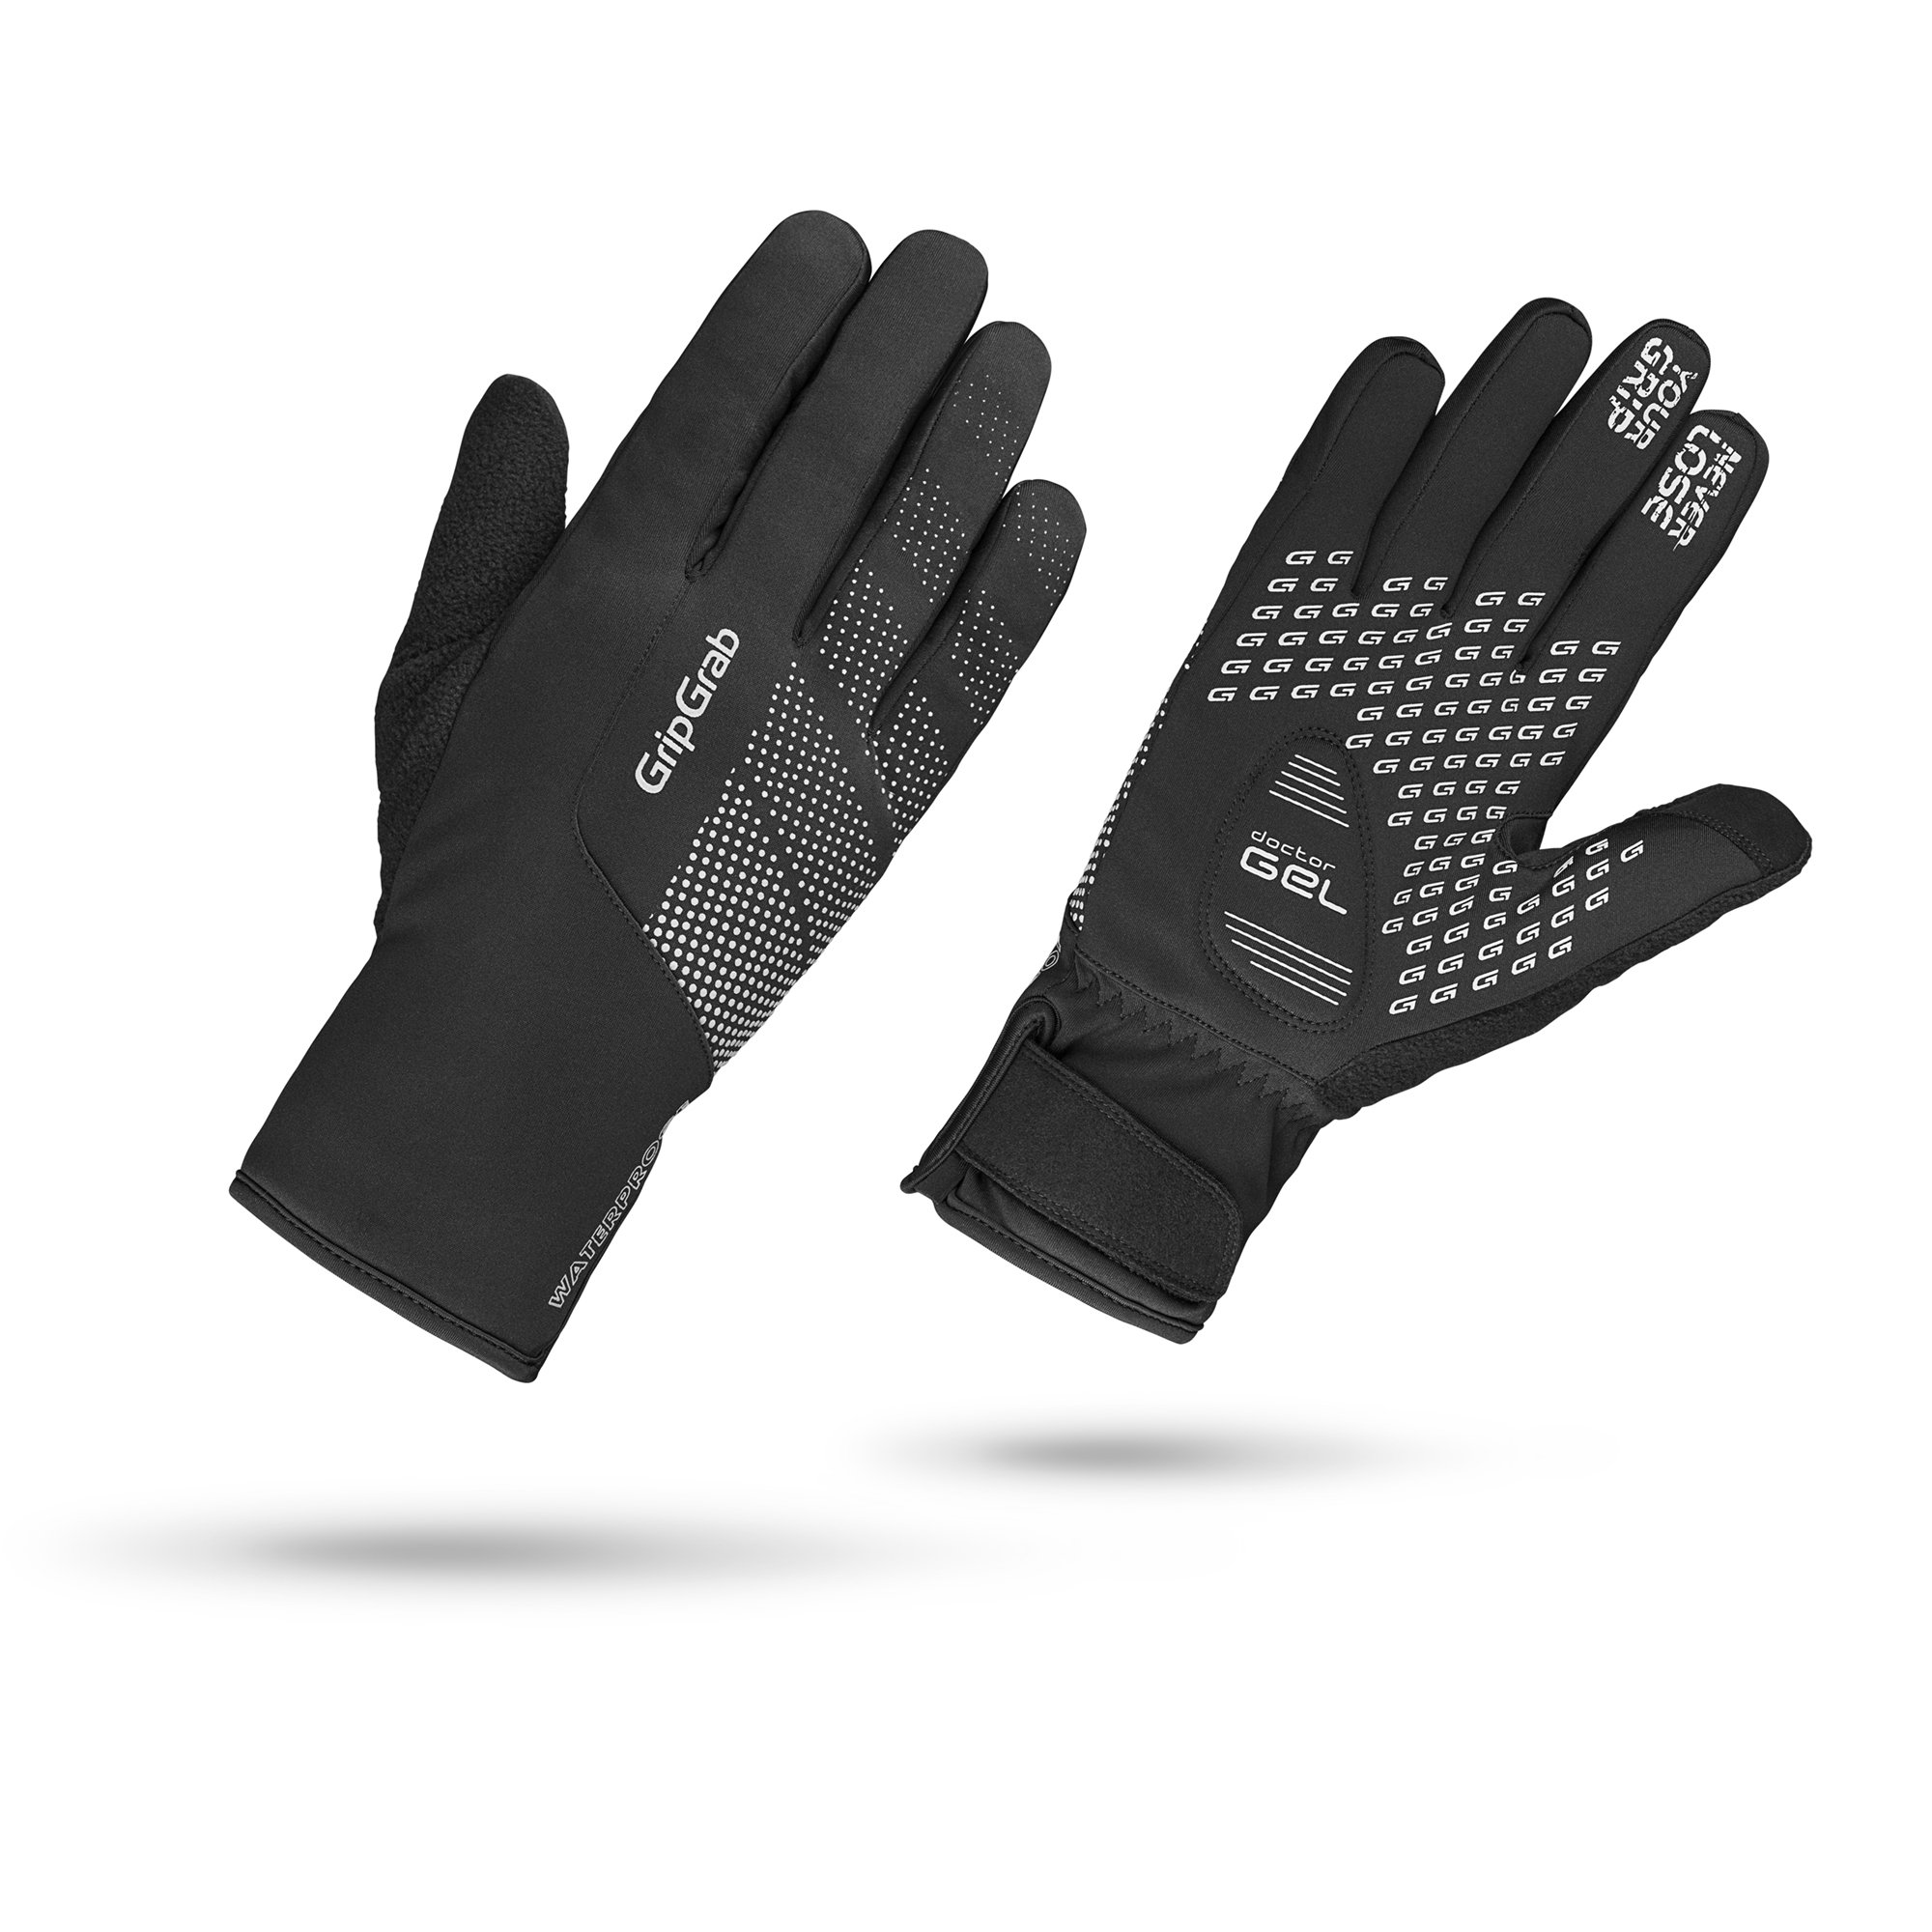 GripGrab Ride Waterproof Winter gloves